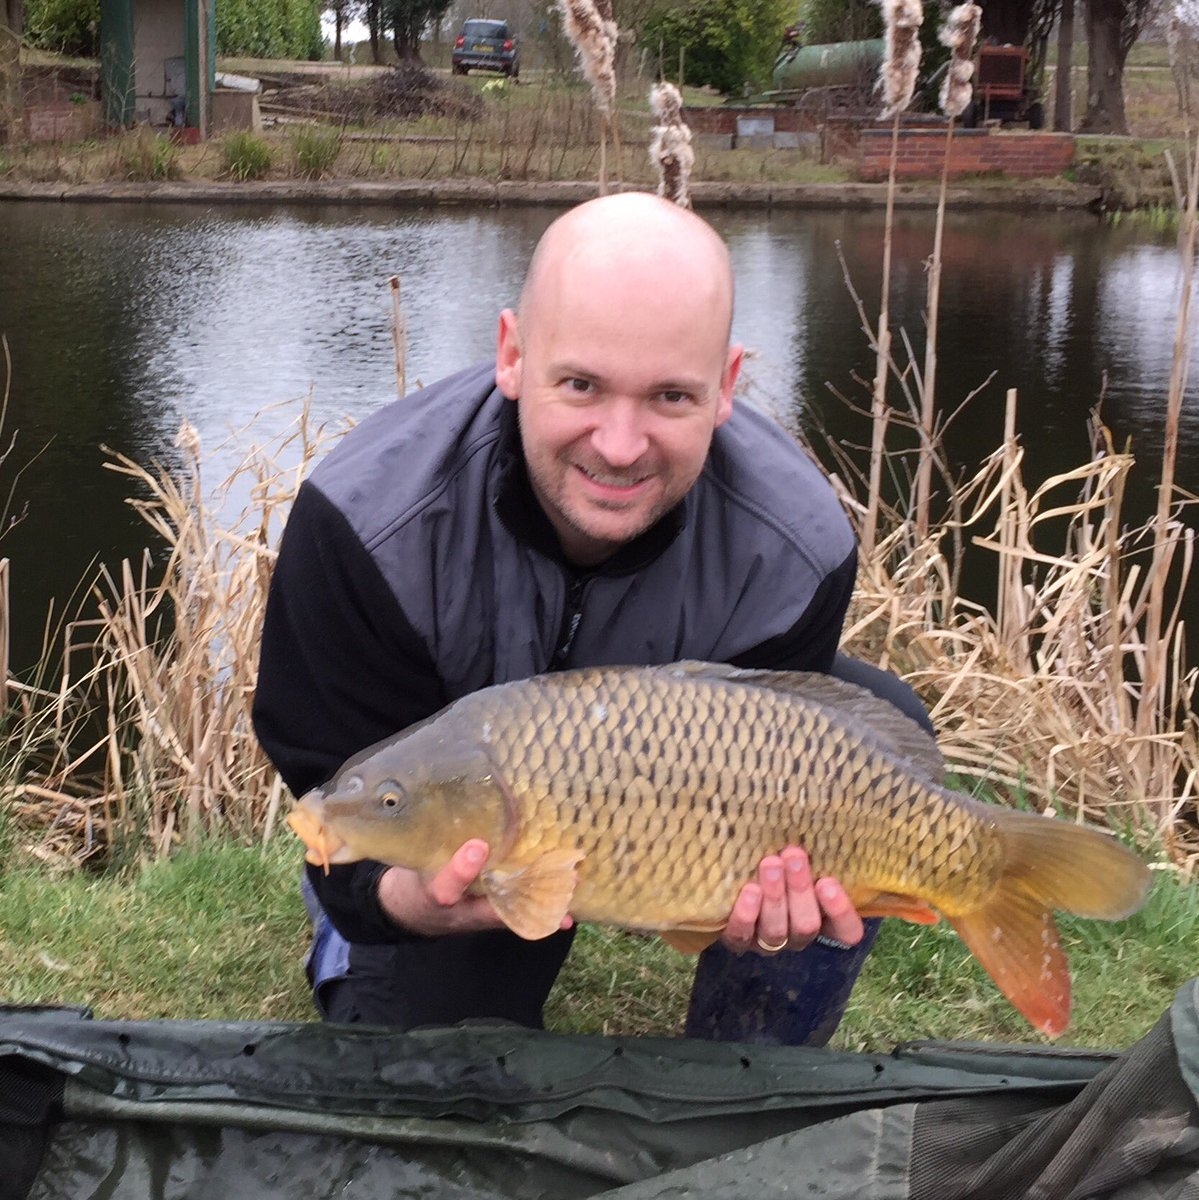 It's been a while since out last carp #fishing trip, so planning a few <b>Hour</b>s soon! #carpfis